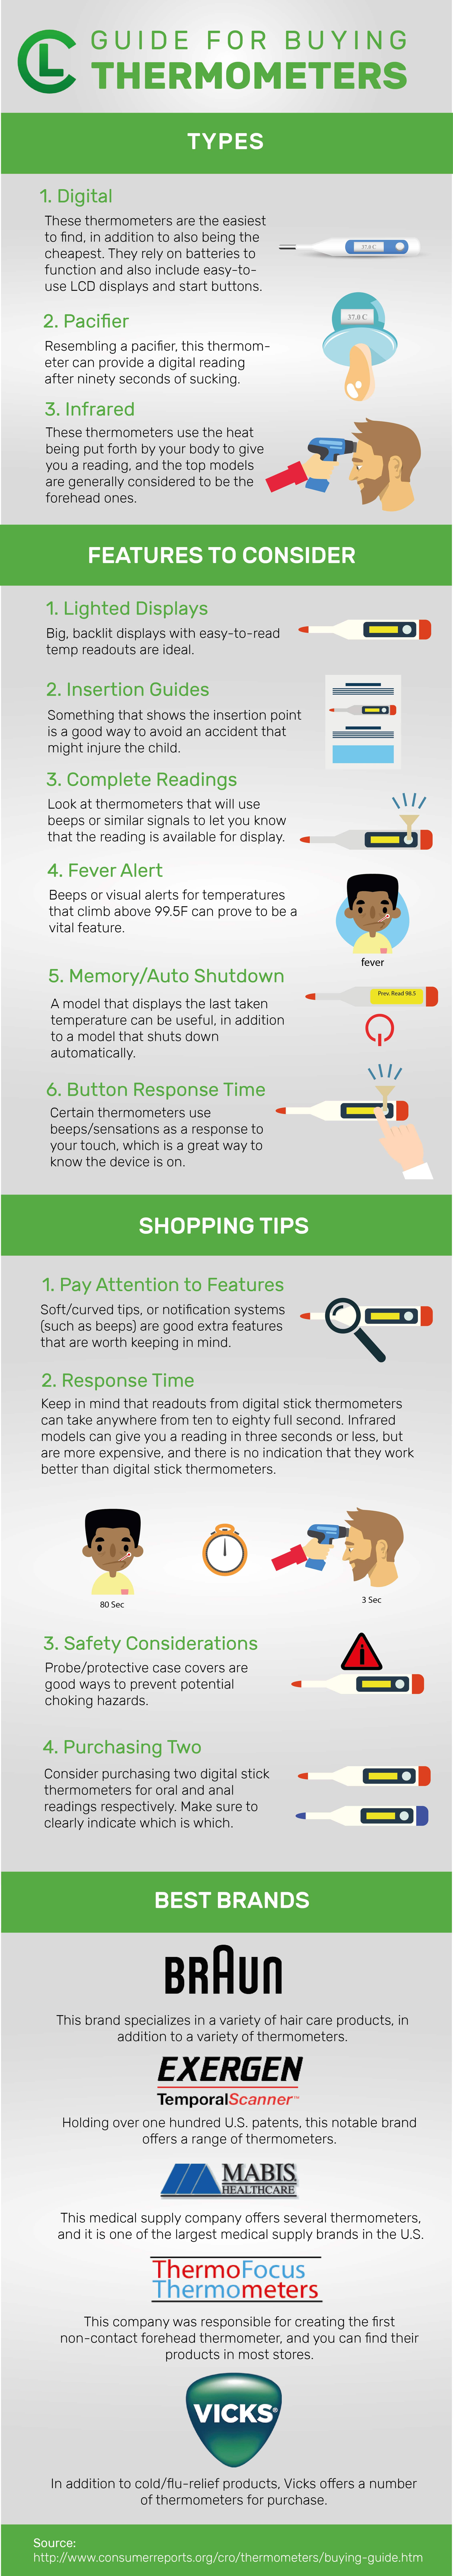 Guide For Buying Thermometers Infographic